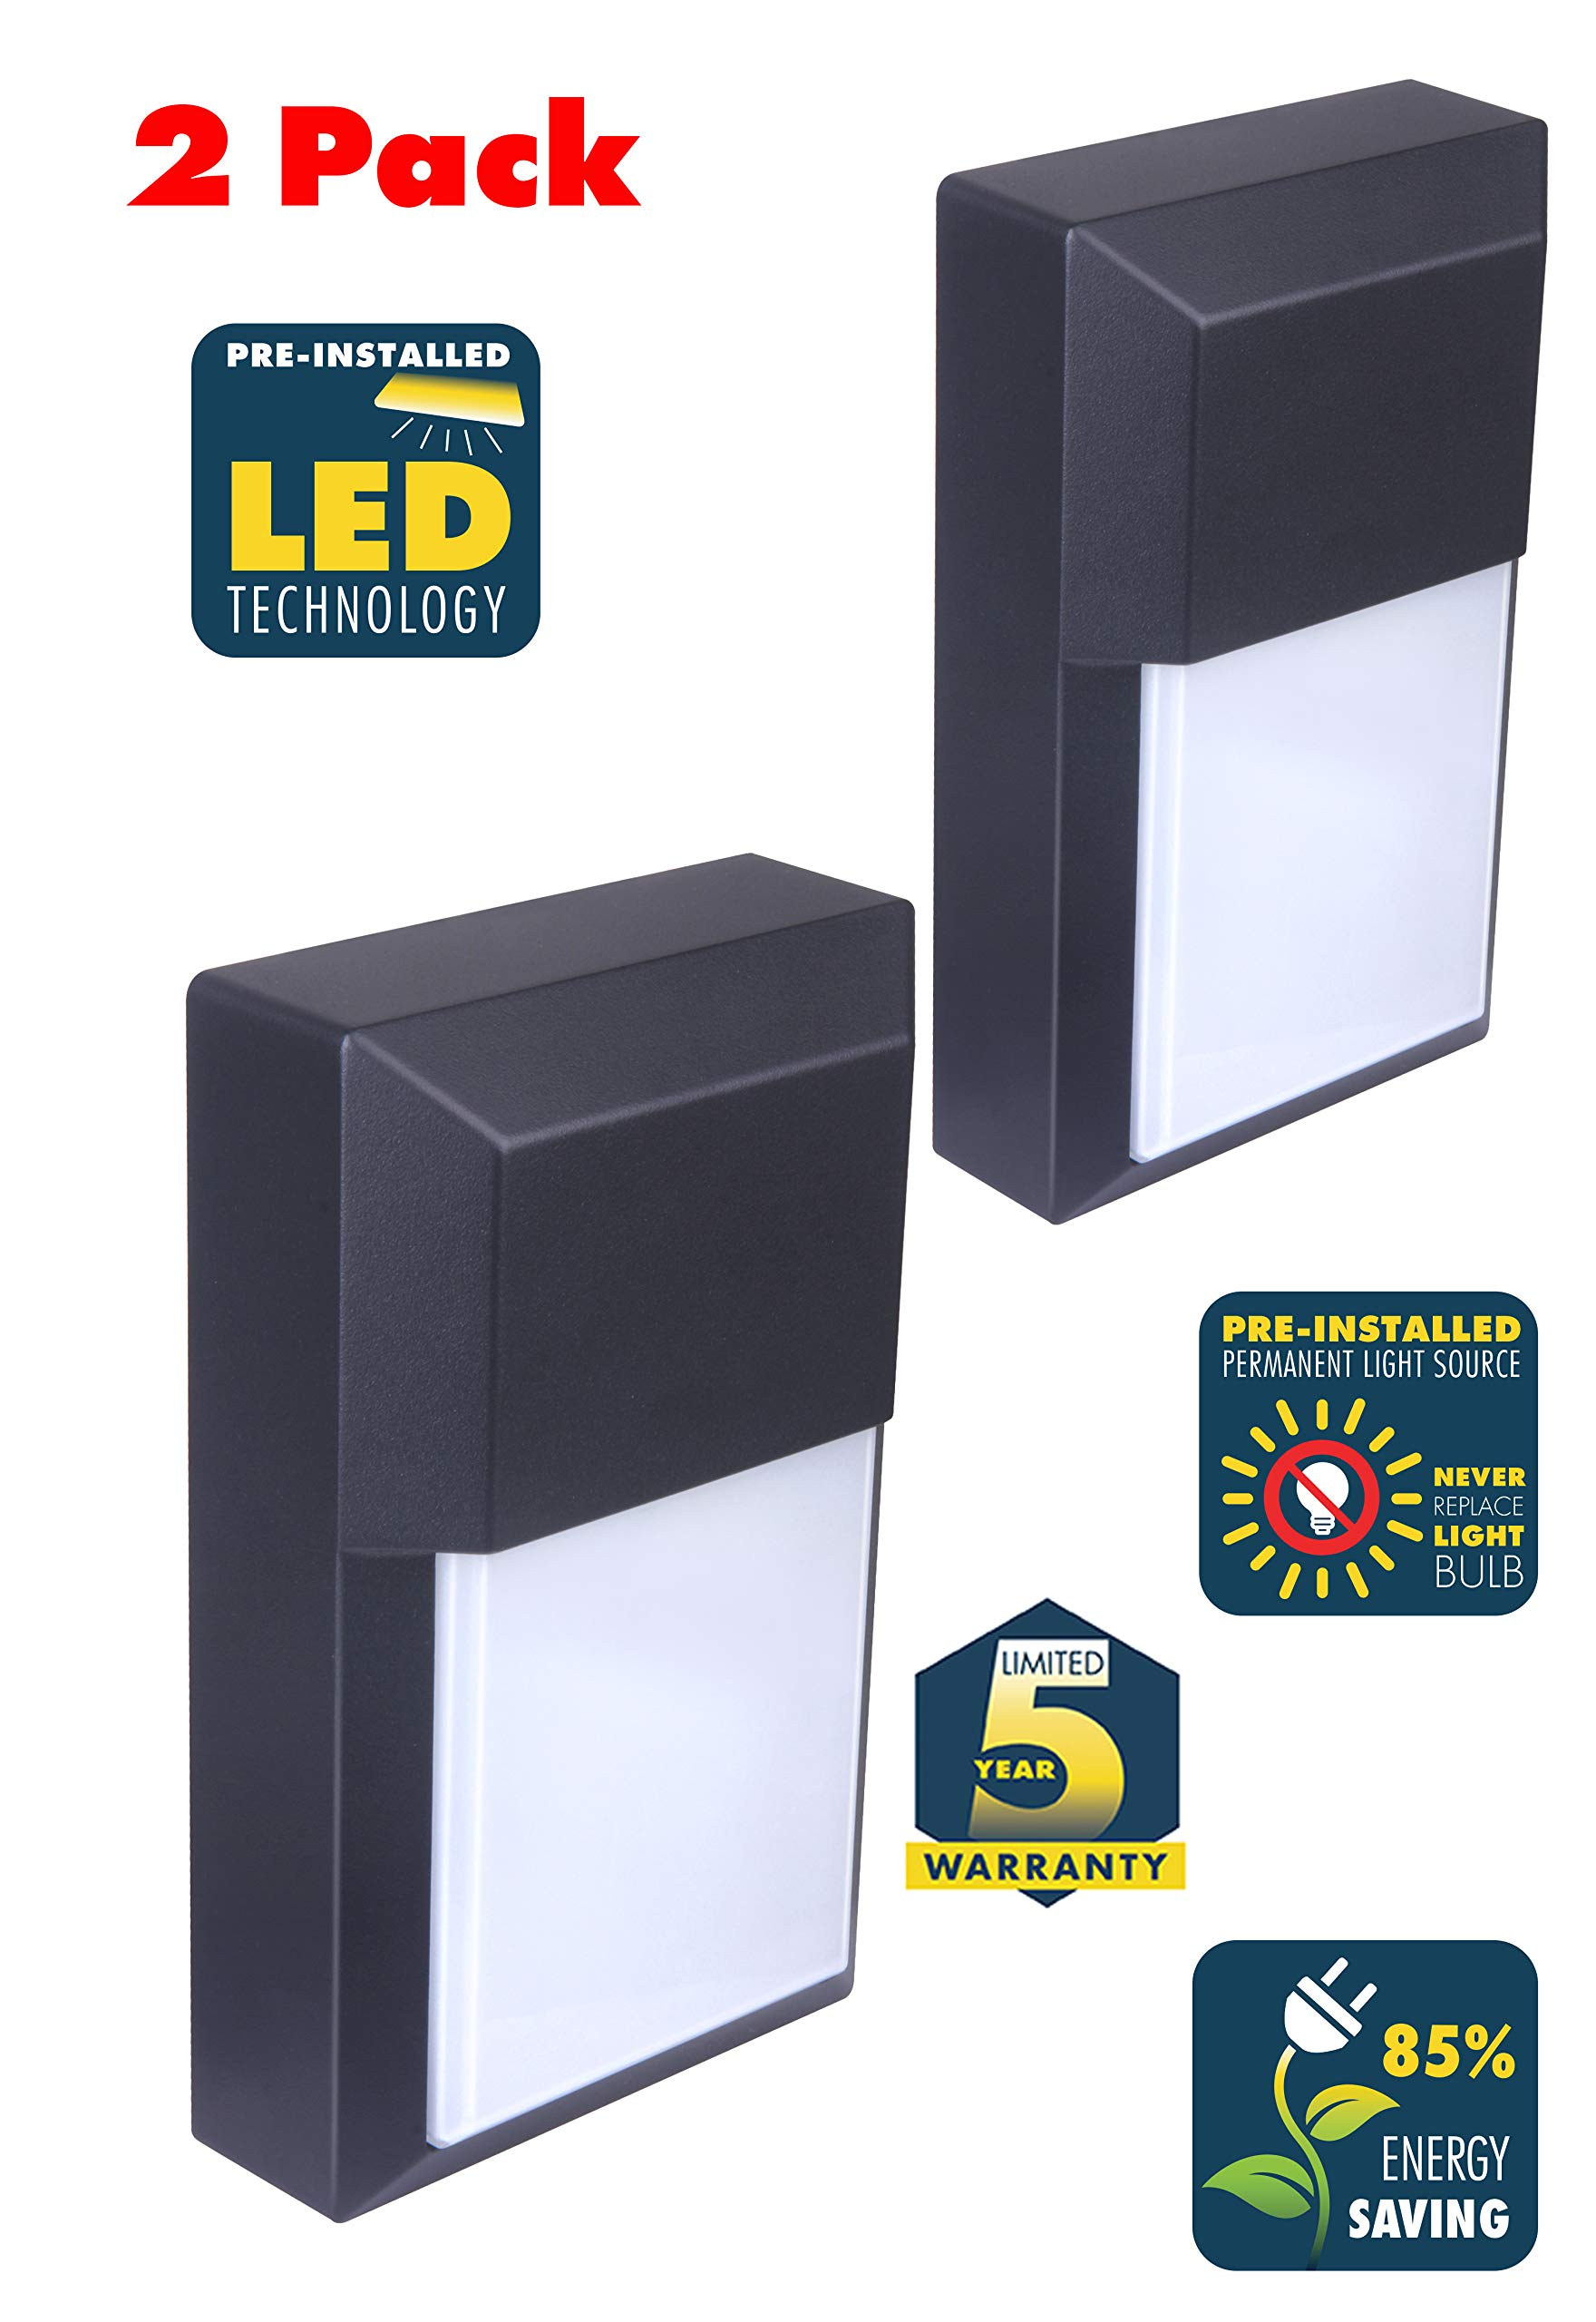 CORAMDEO Commercial and Residential Outdoor LED Wall Pack Light, Wet Location, Built in LED Gives 100W of Light from 12W of Power, Black Cast Aluminum with White PC Lens 2 Pack